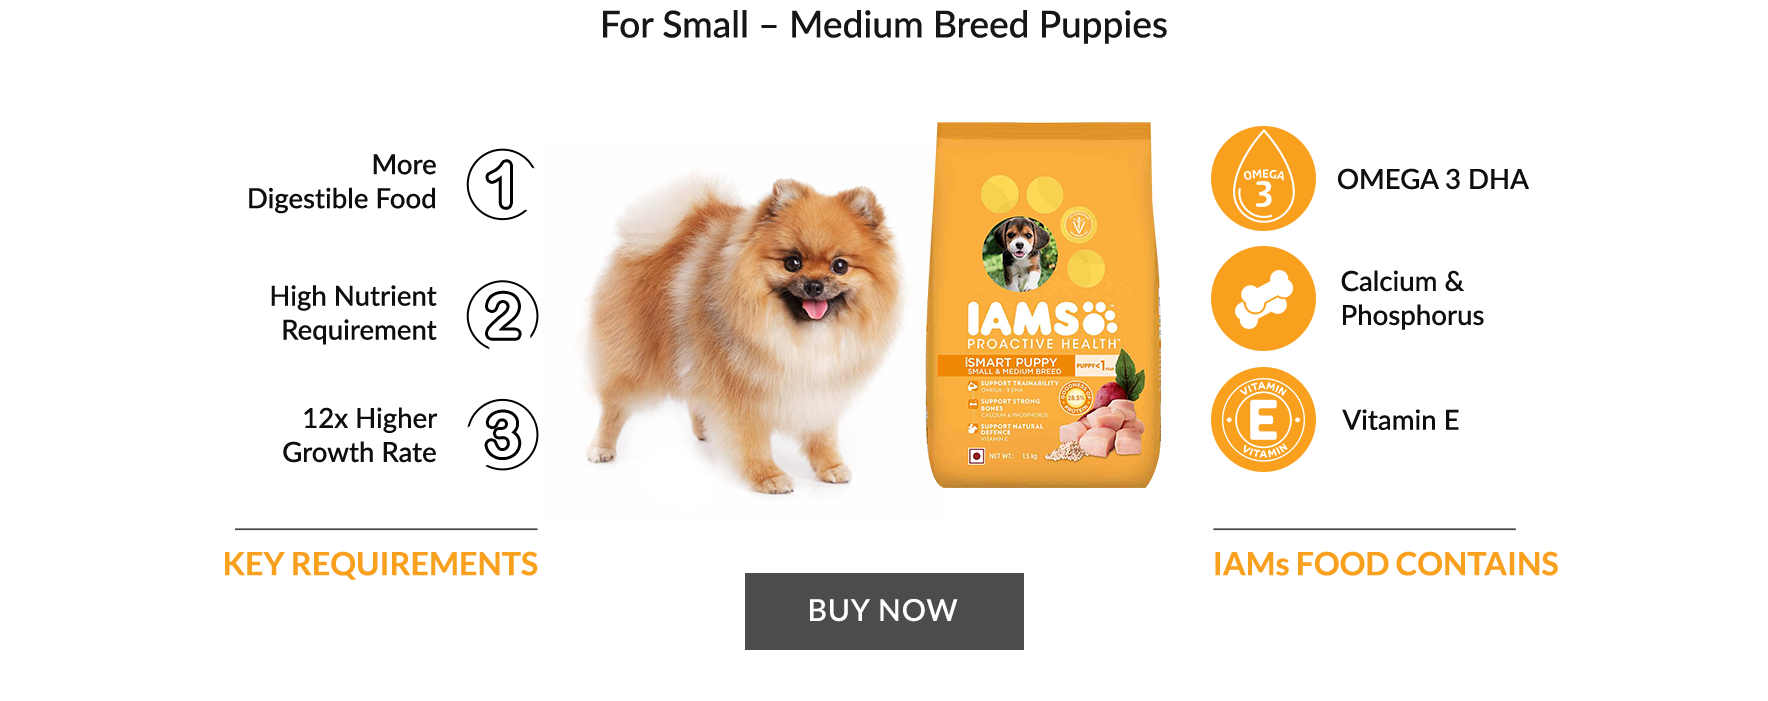 For Small - Medium Breed puppies